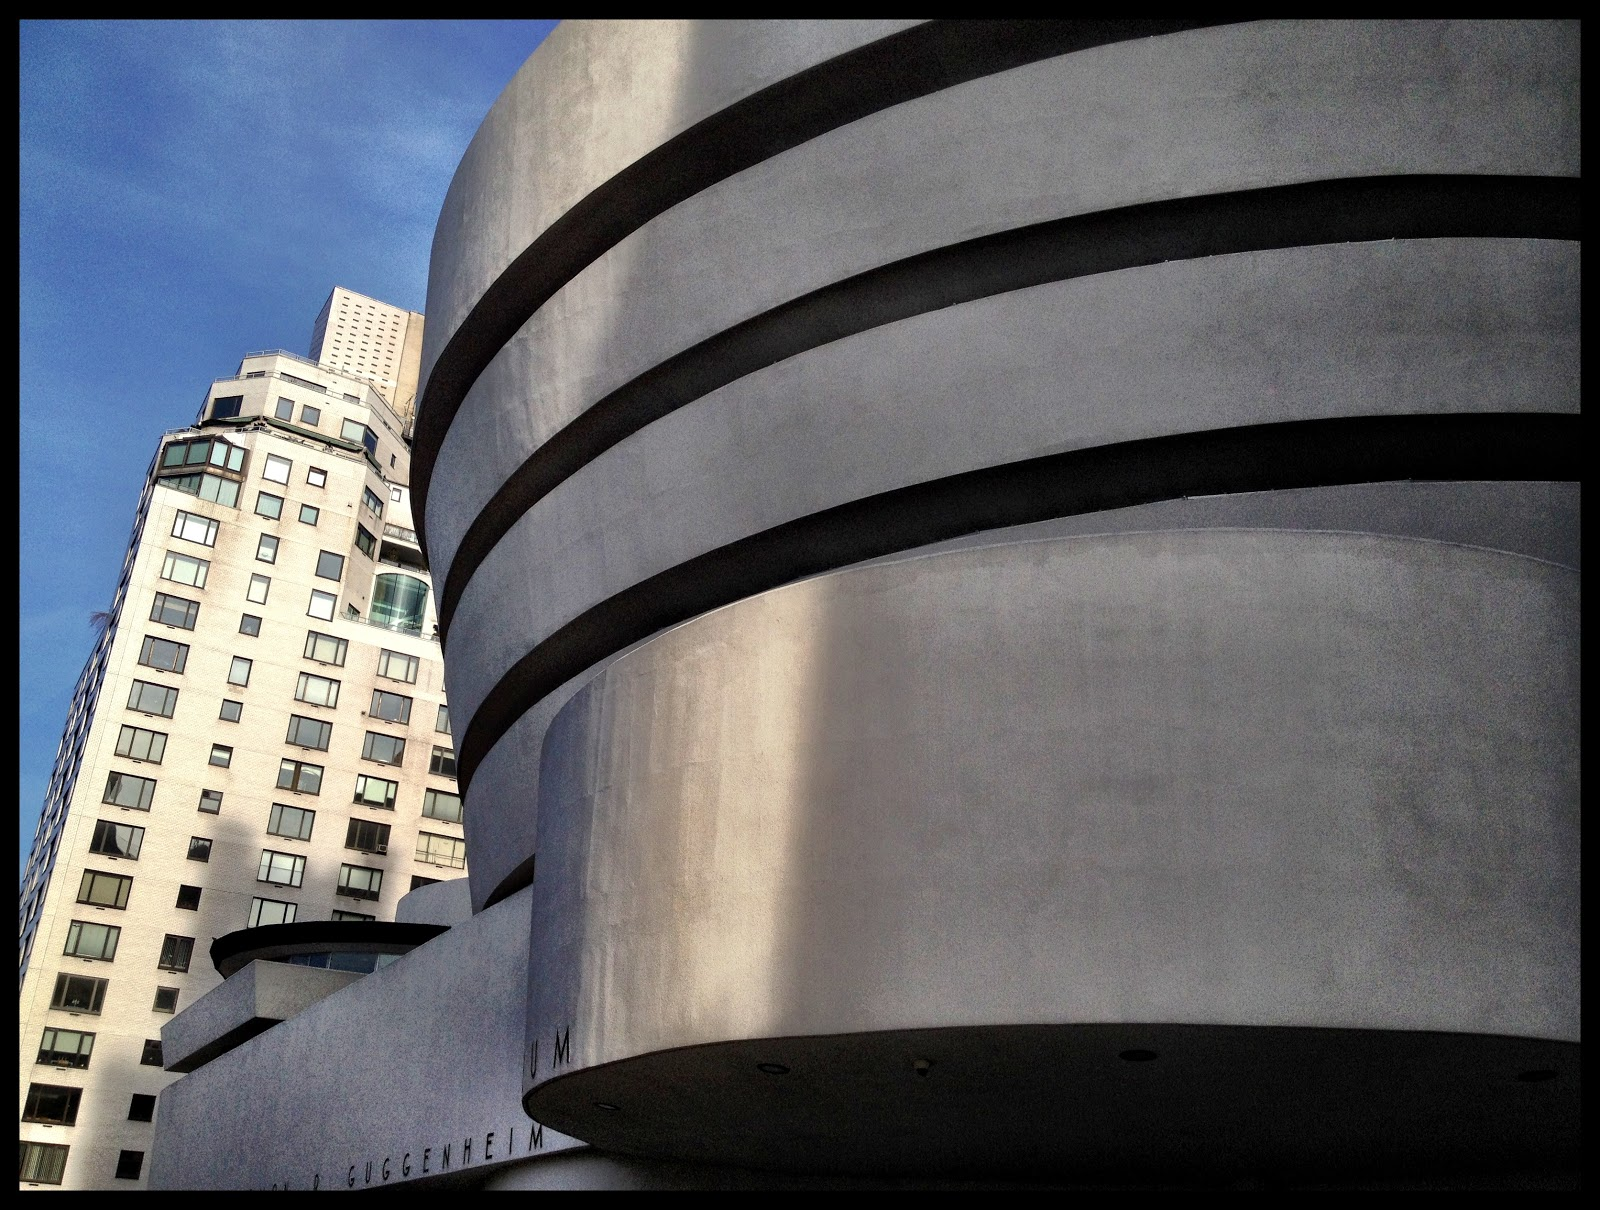 Outside the Guggenheim Museum, New York. Taken using Camera+